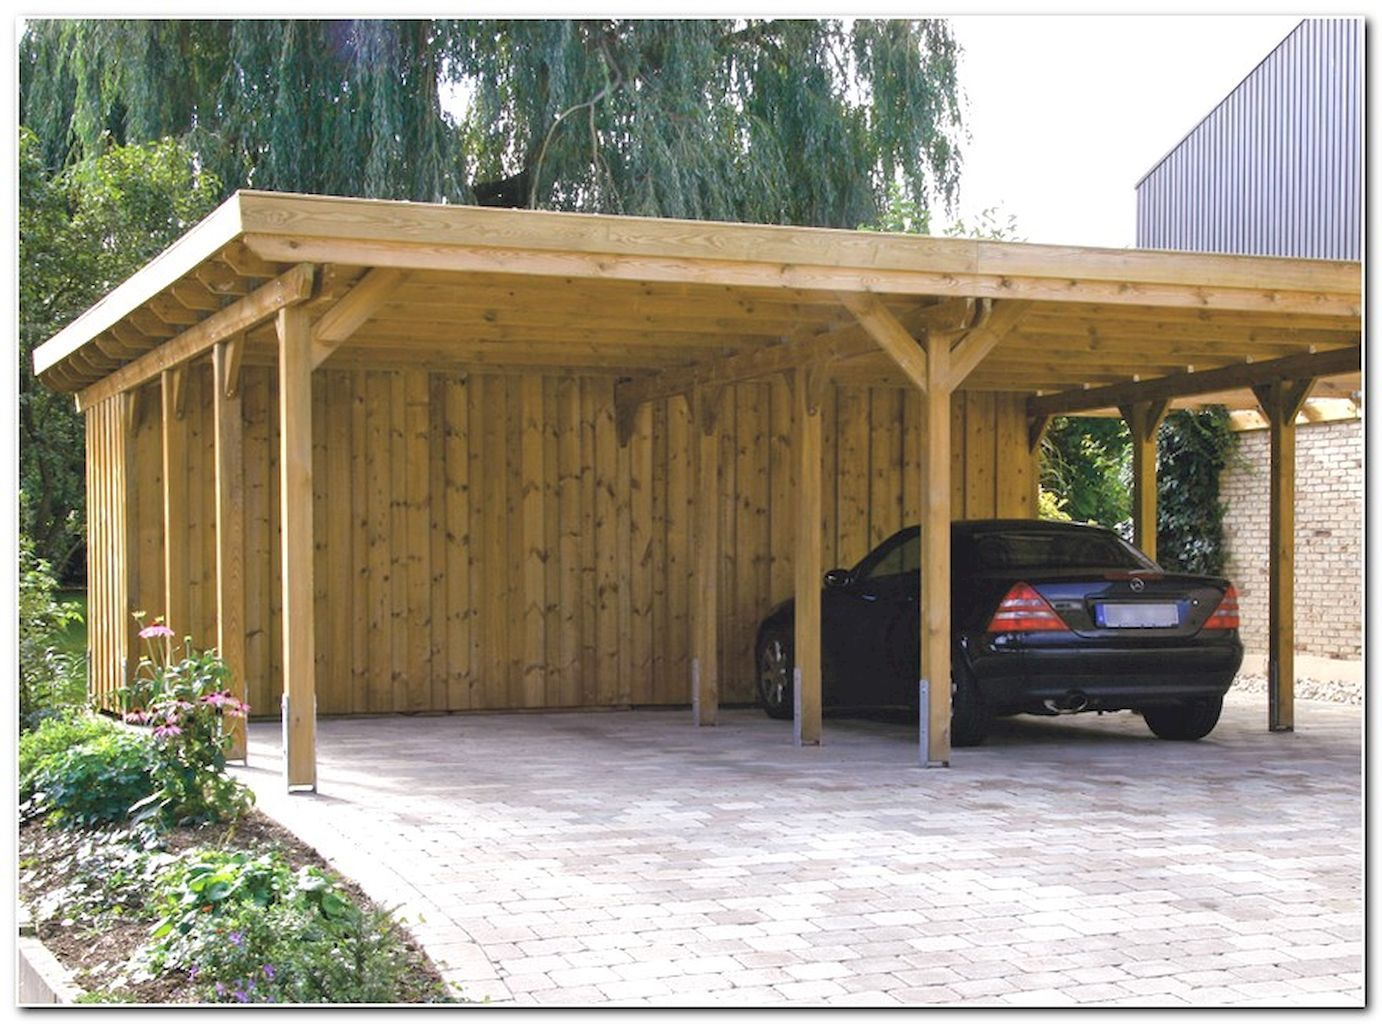 Garage modern holz  55 Adorable Modern Carports Garage Designs Ideas